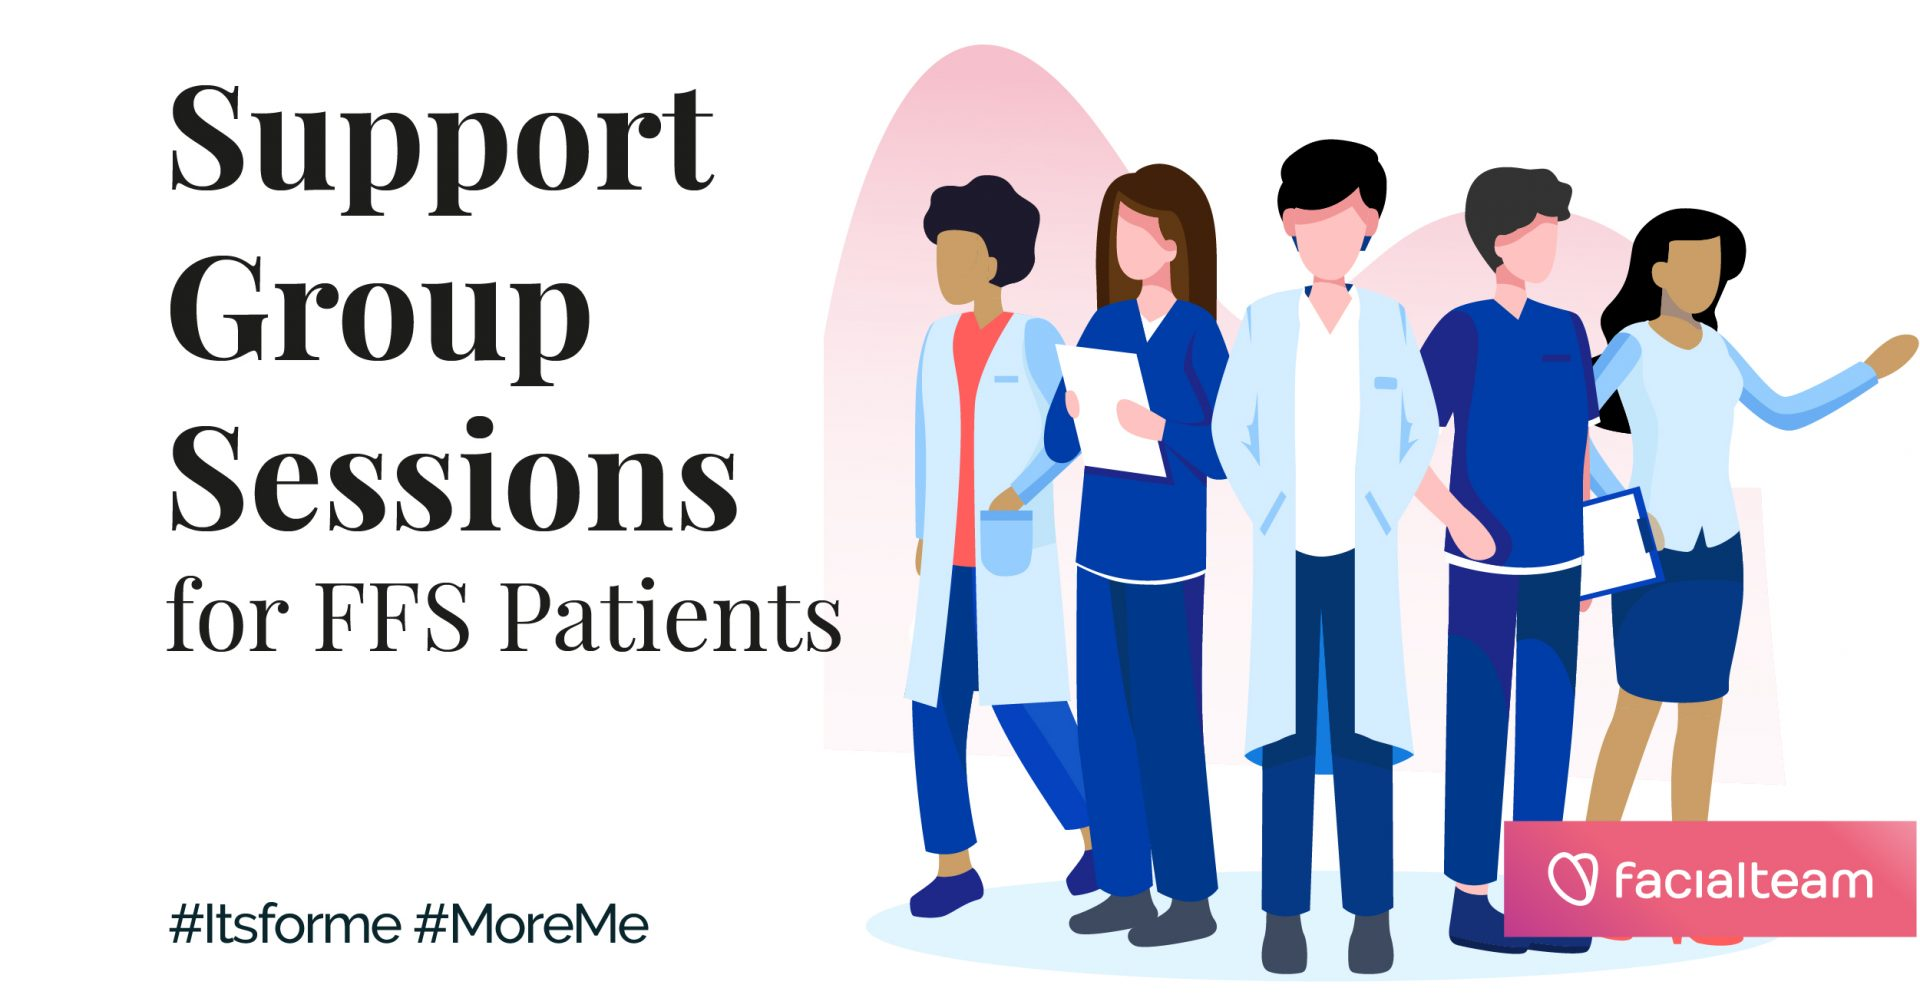 It takes a village – FFS Support sessions are not just for patients